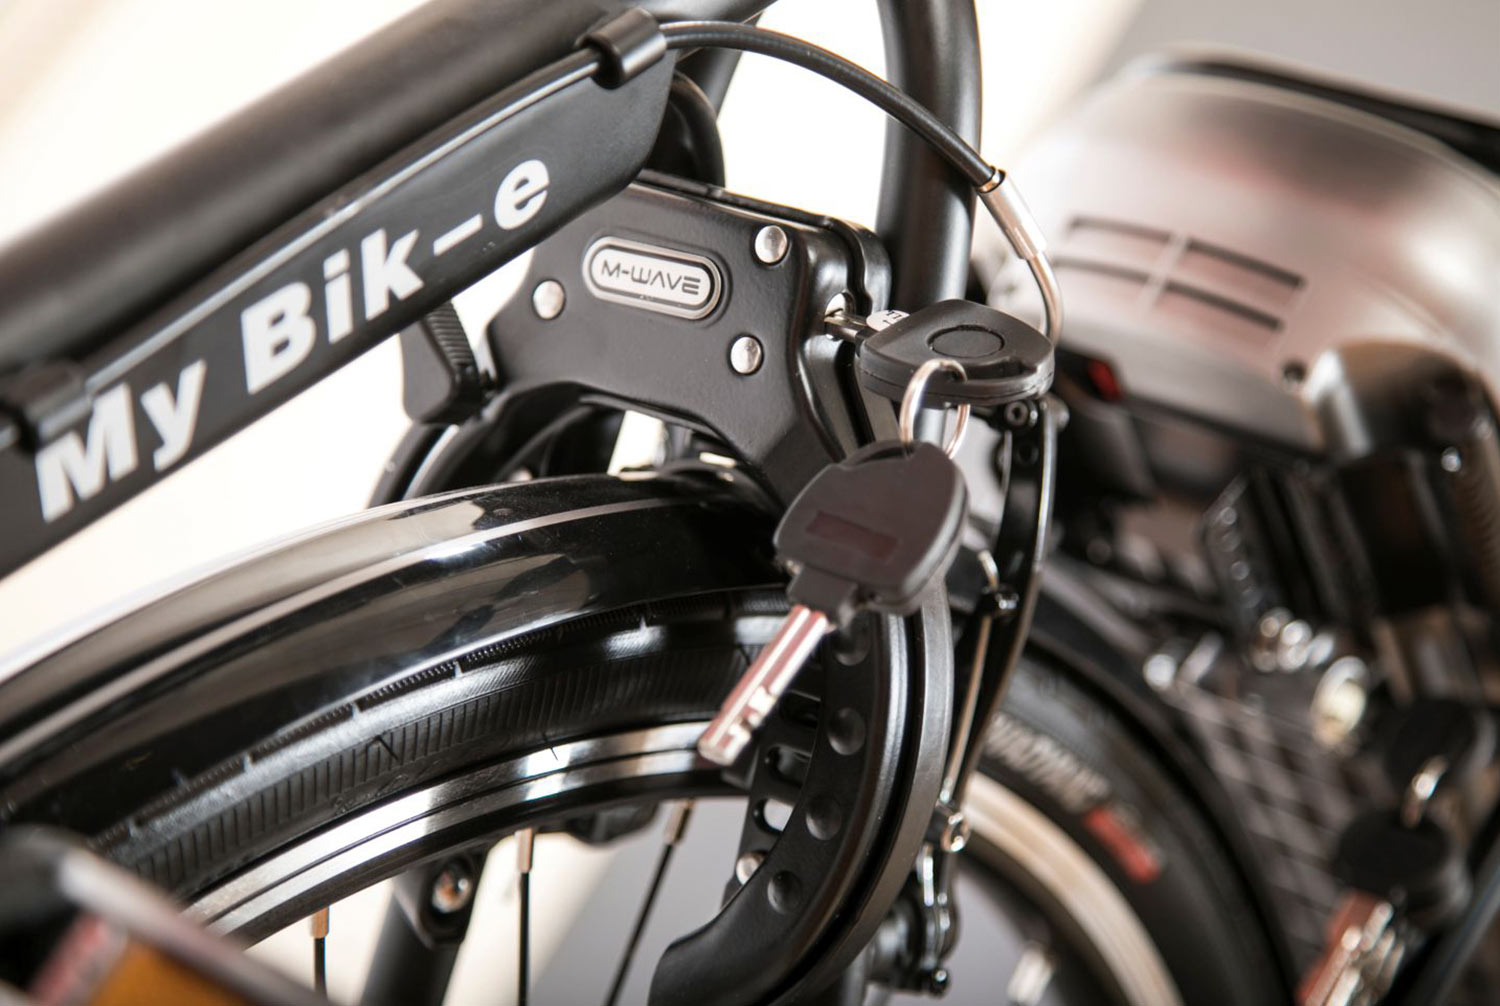 MY BIK-e 7sp. (middle motor) bike image